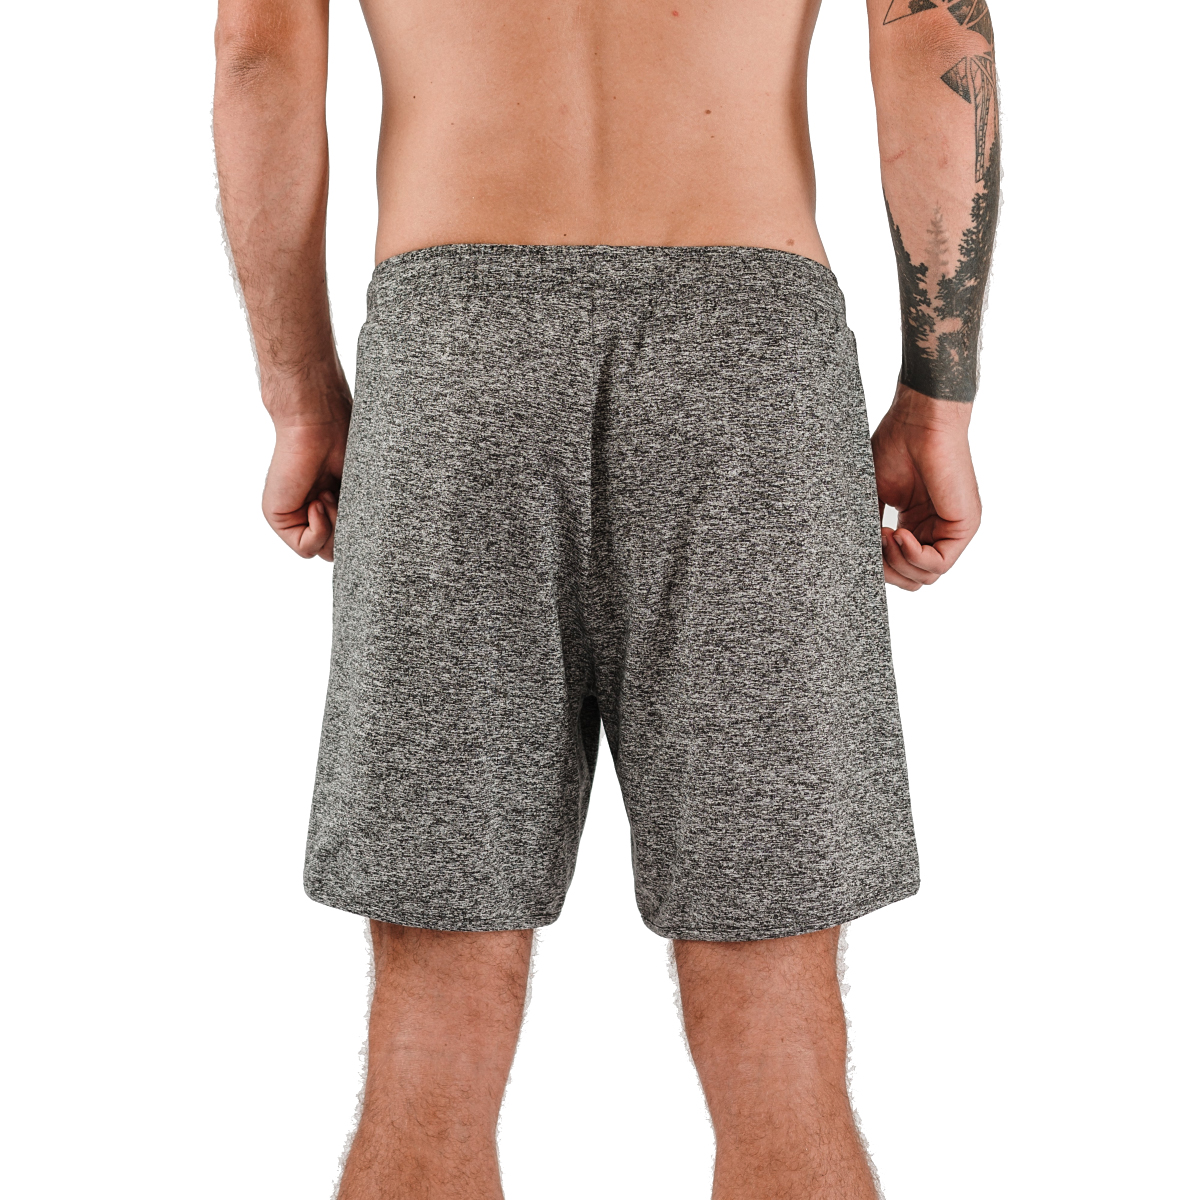 Men's Rabbit EZ 7'' Short - Color: Charcoal - Size: S, Charcoal, large, image 4